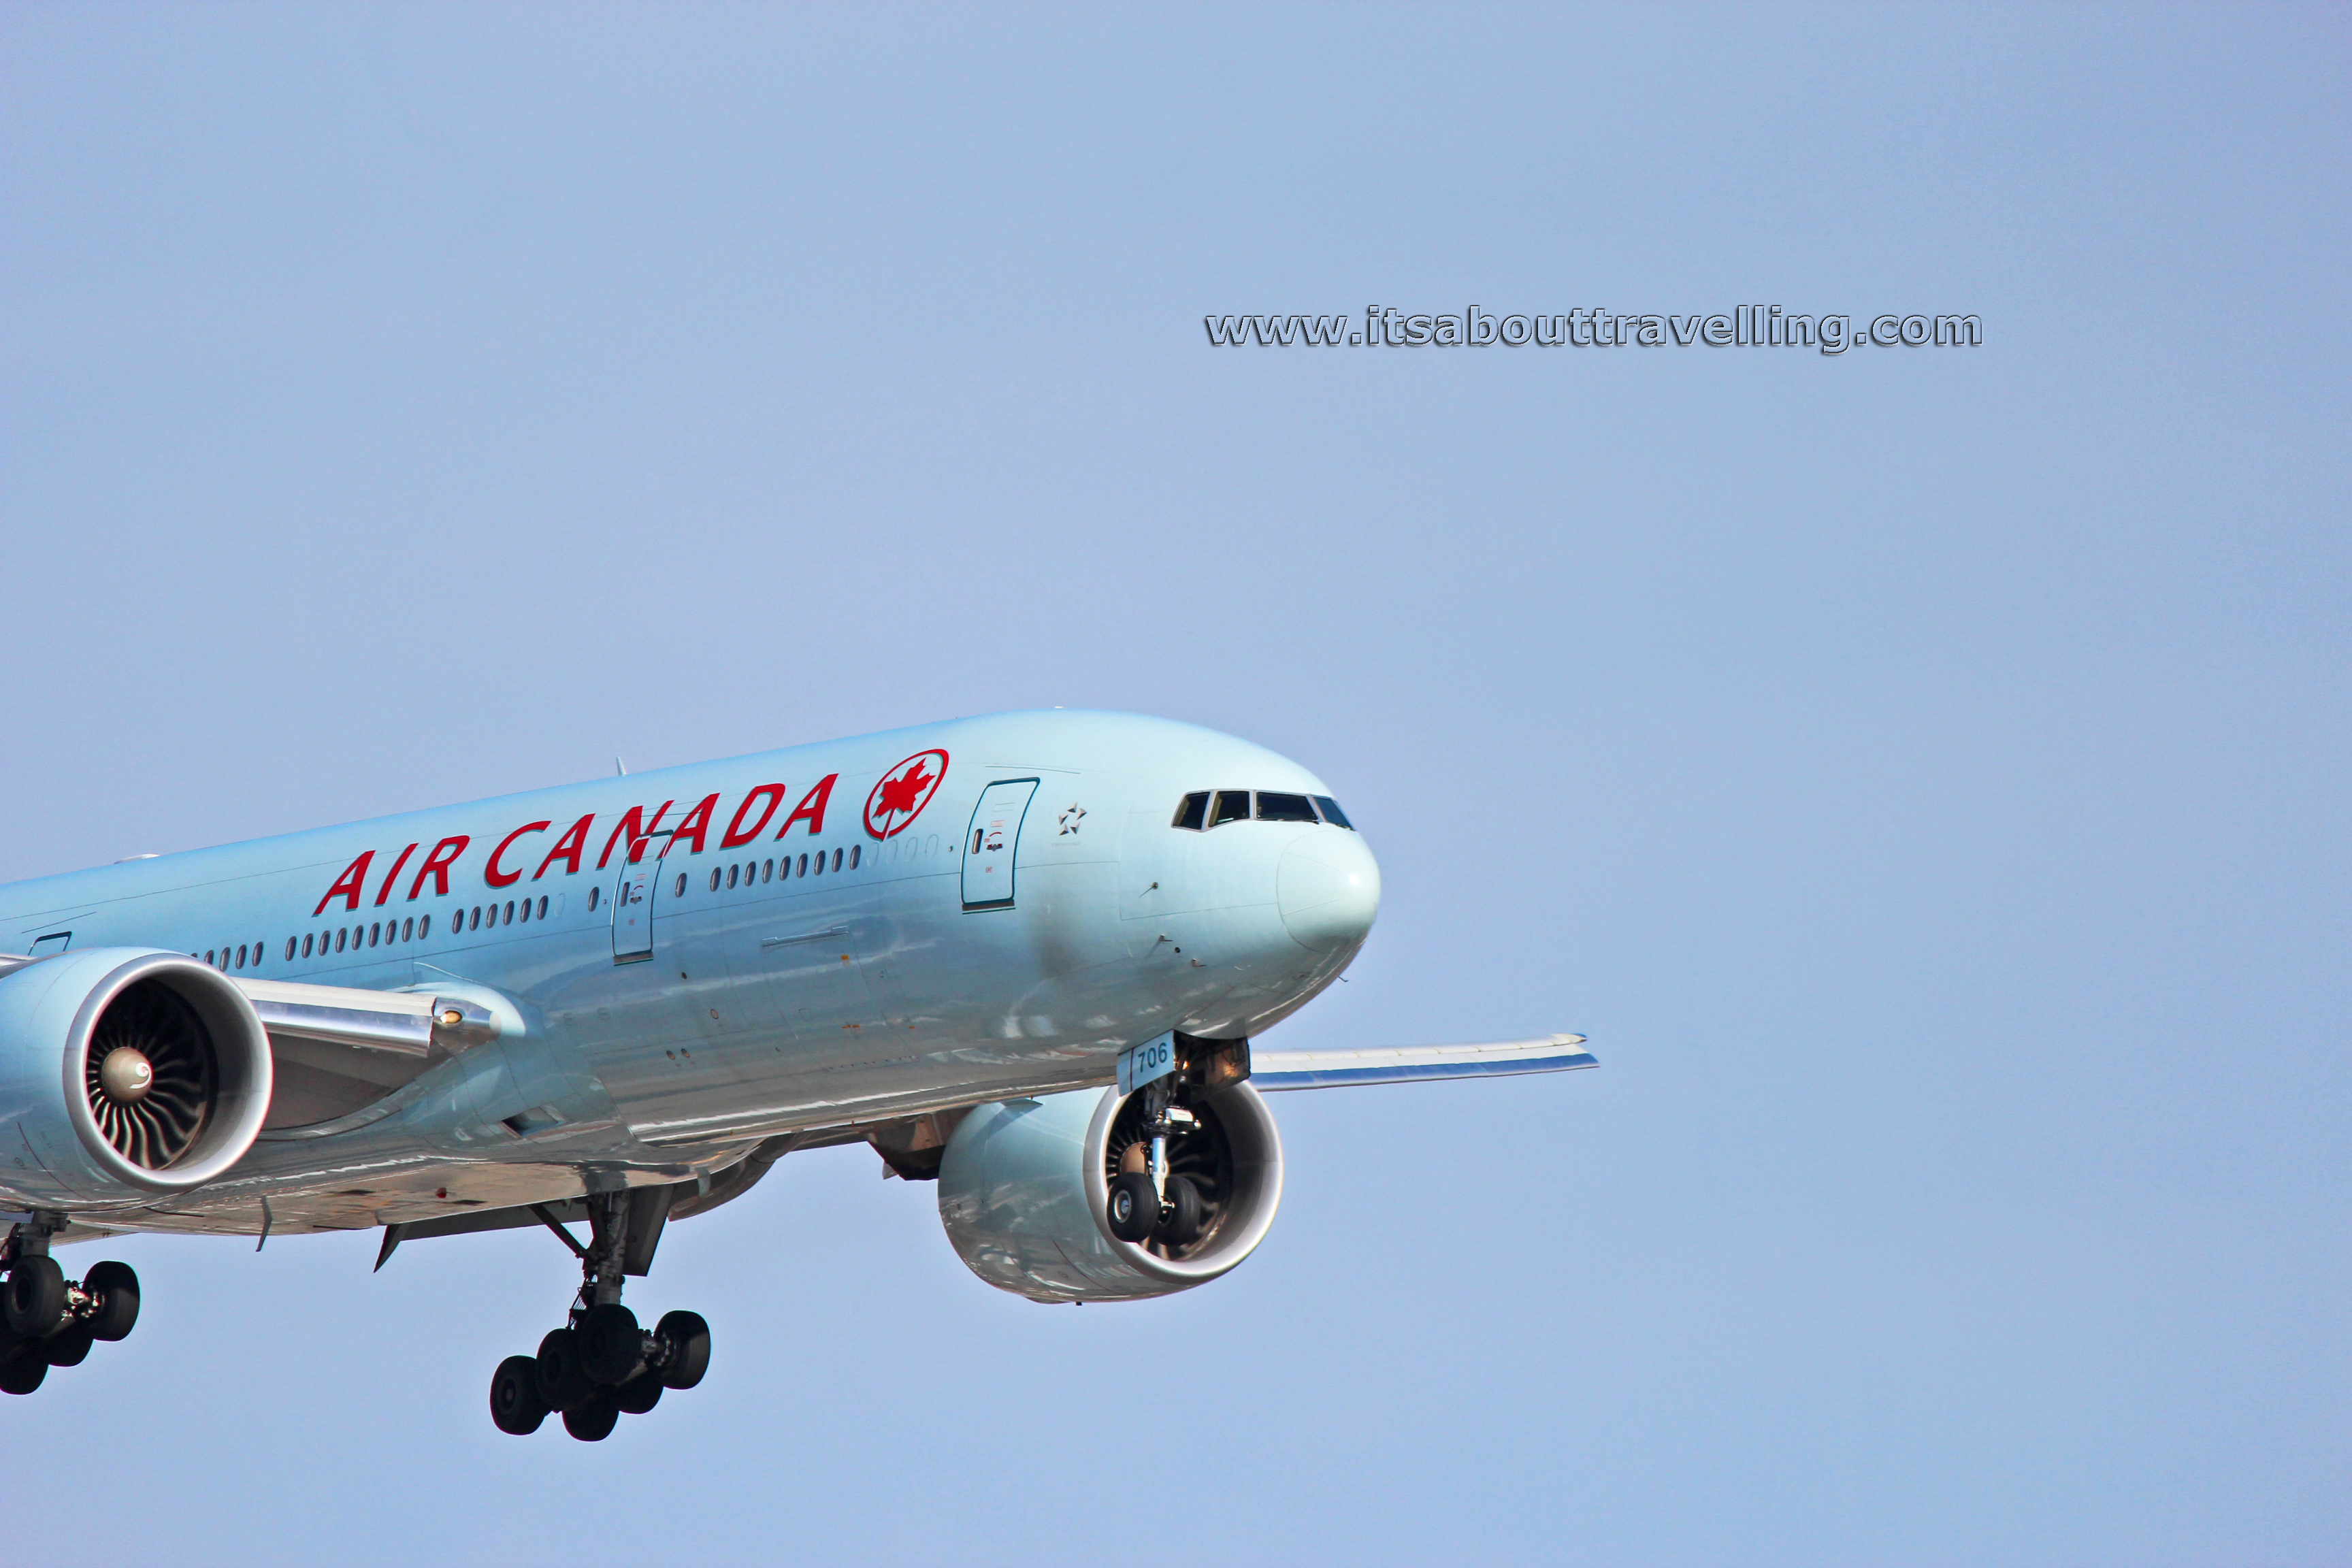 c fnnh air canada boeing 777 it 39 s about travelling. Black Bedroom Furniture Sets. Home Design Ideas